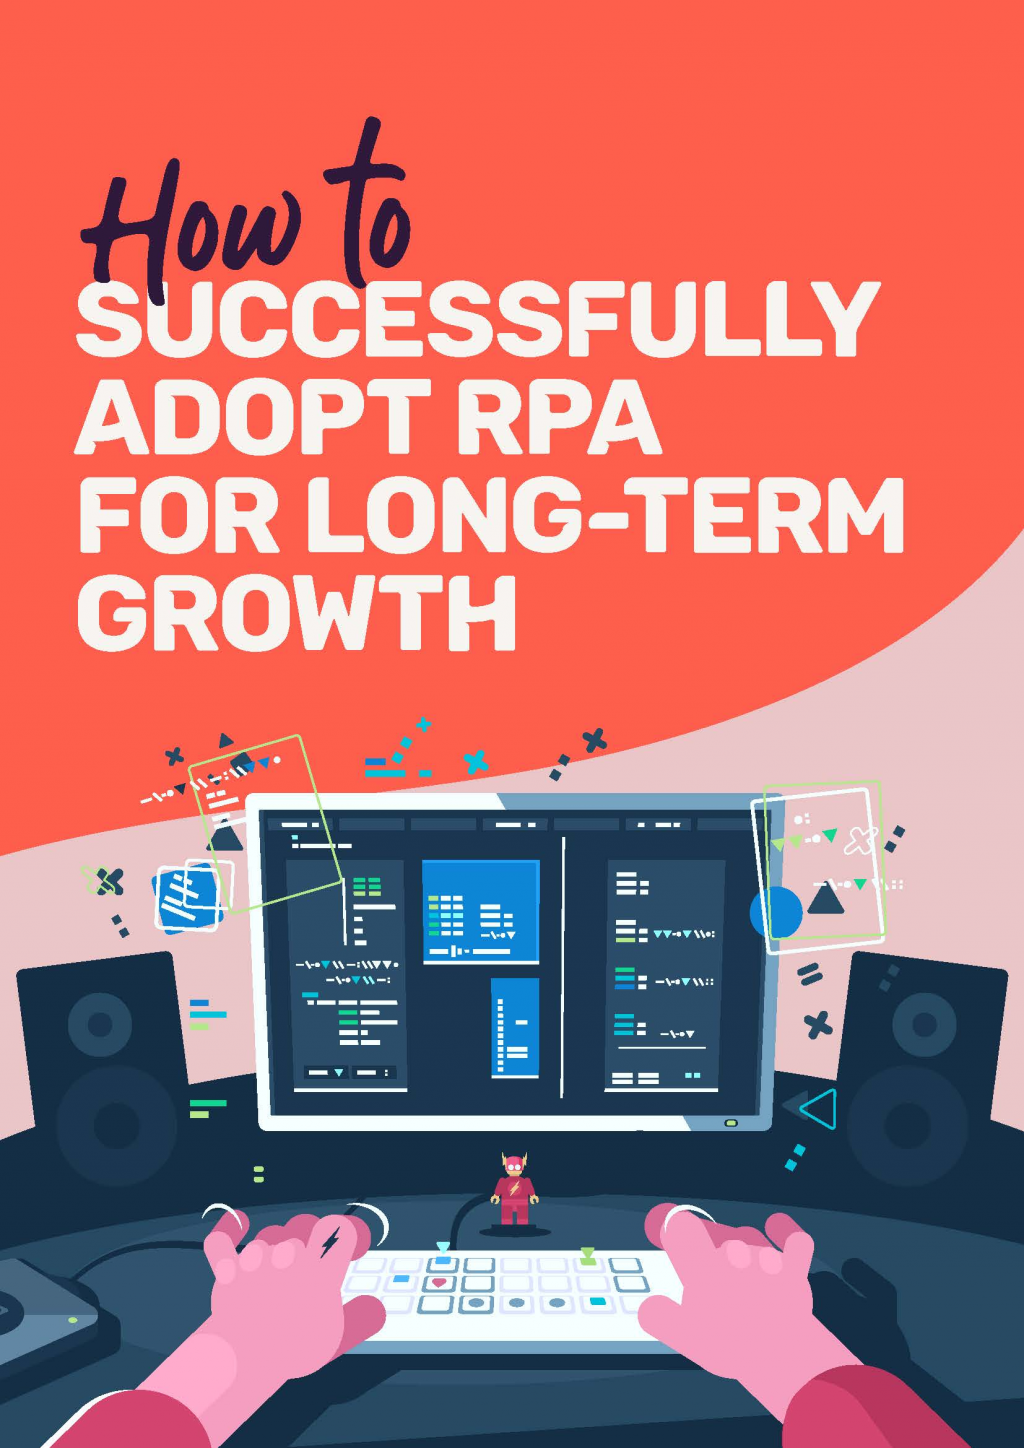 Read the article - How to Successfully Adopt RPA for Long-Term Growth